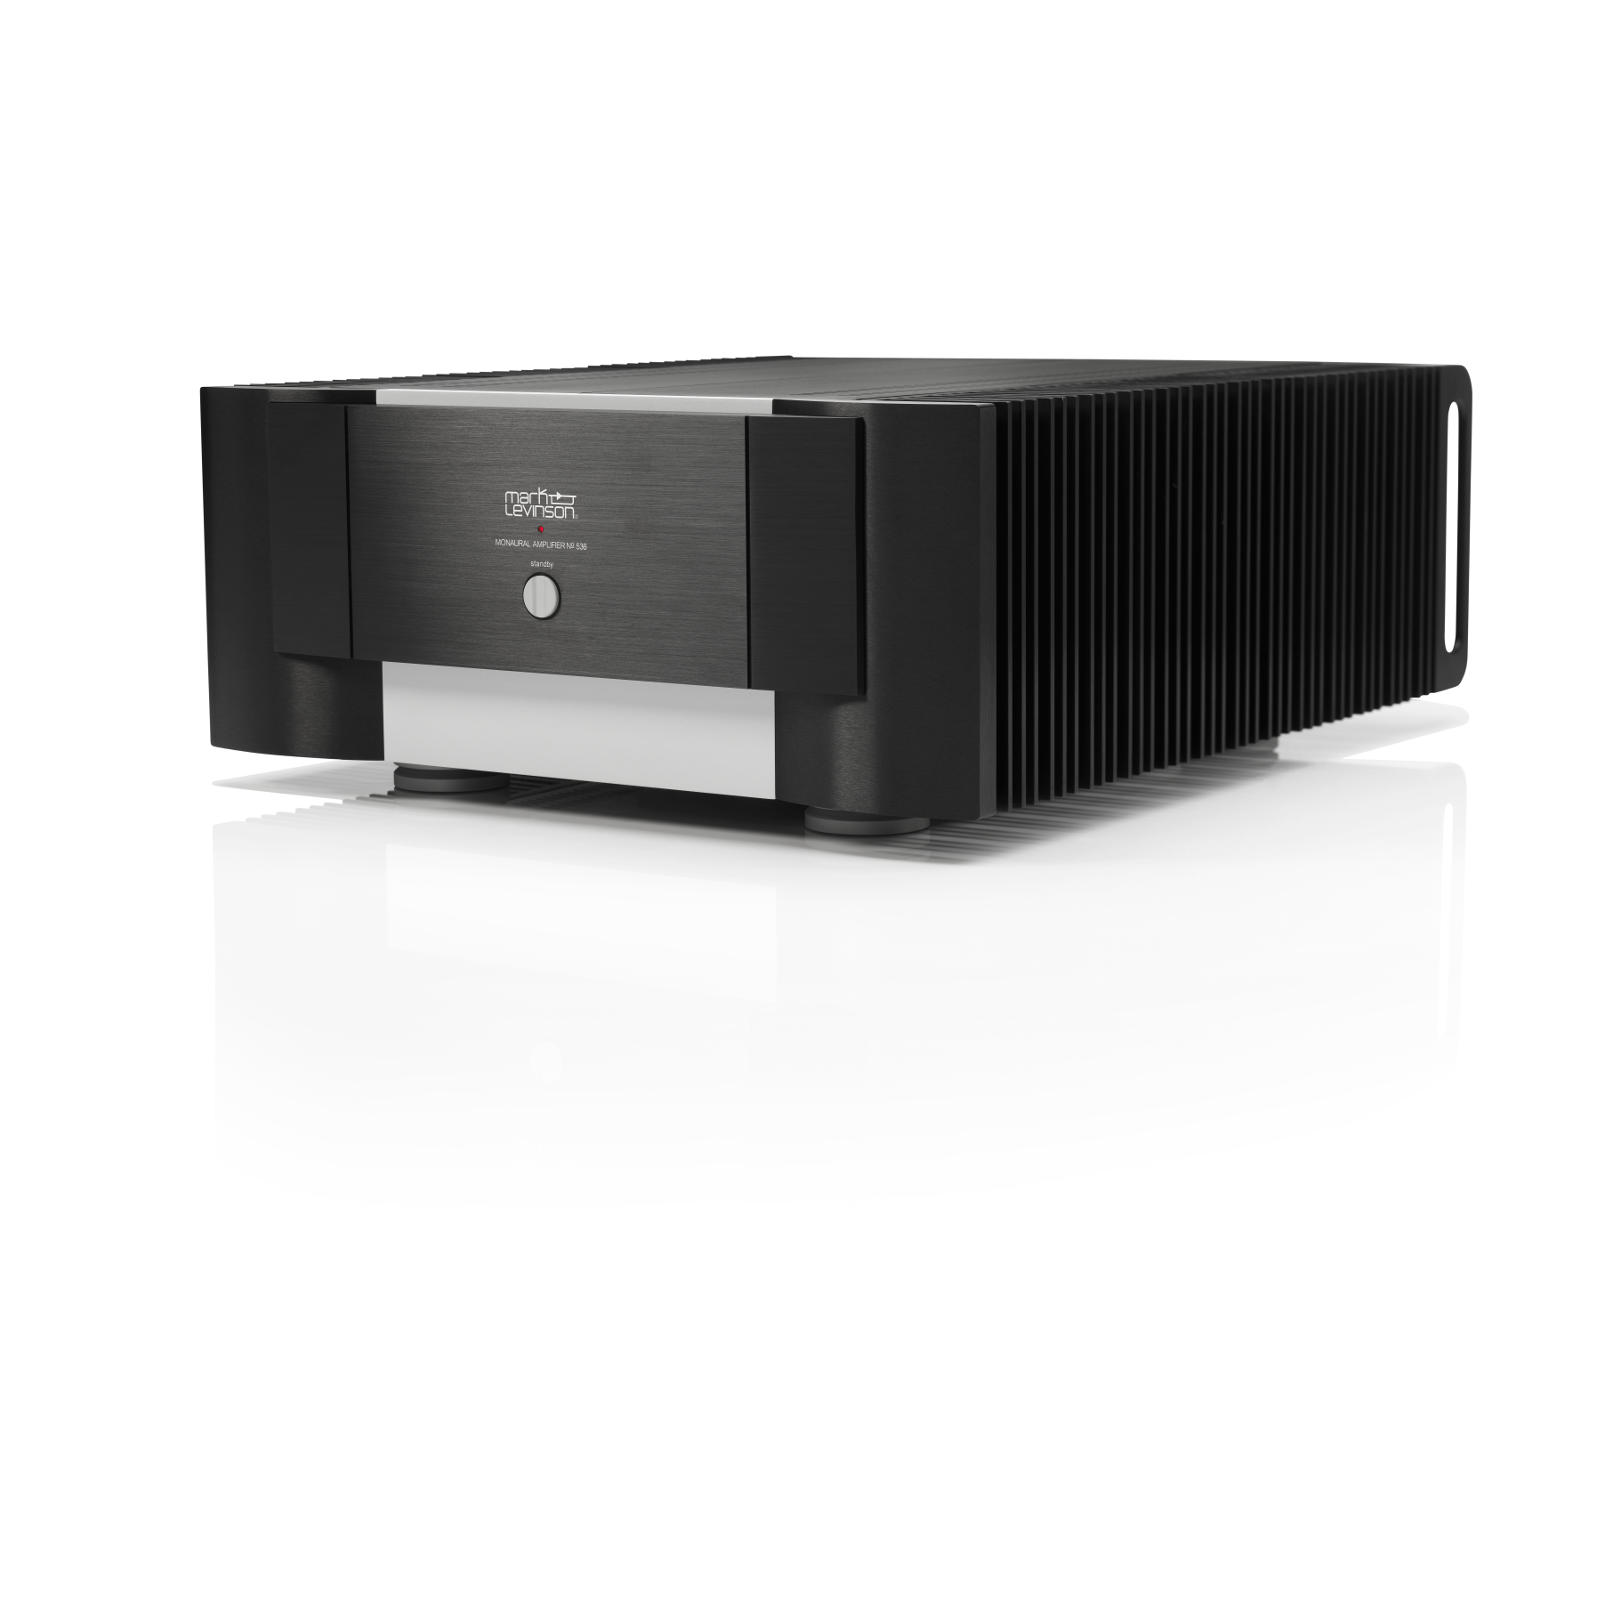 Nº536 - Black - Fully Discrete Monaural Amplifier - Hero